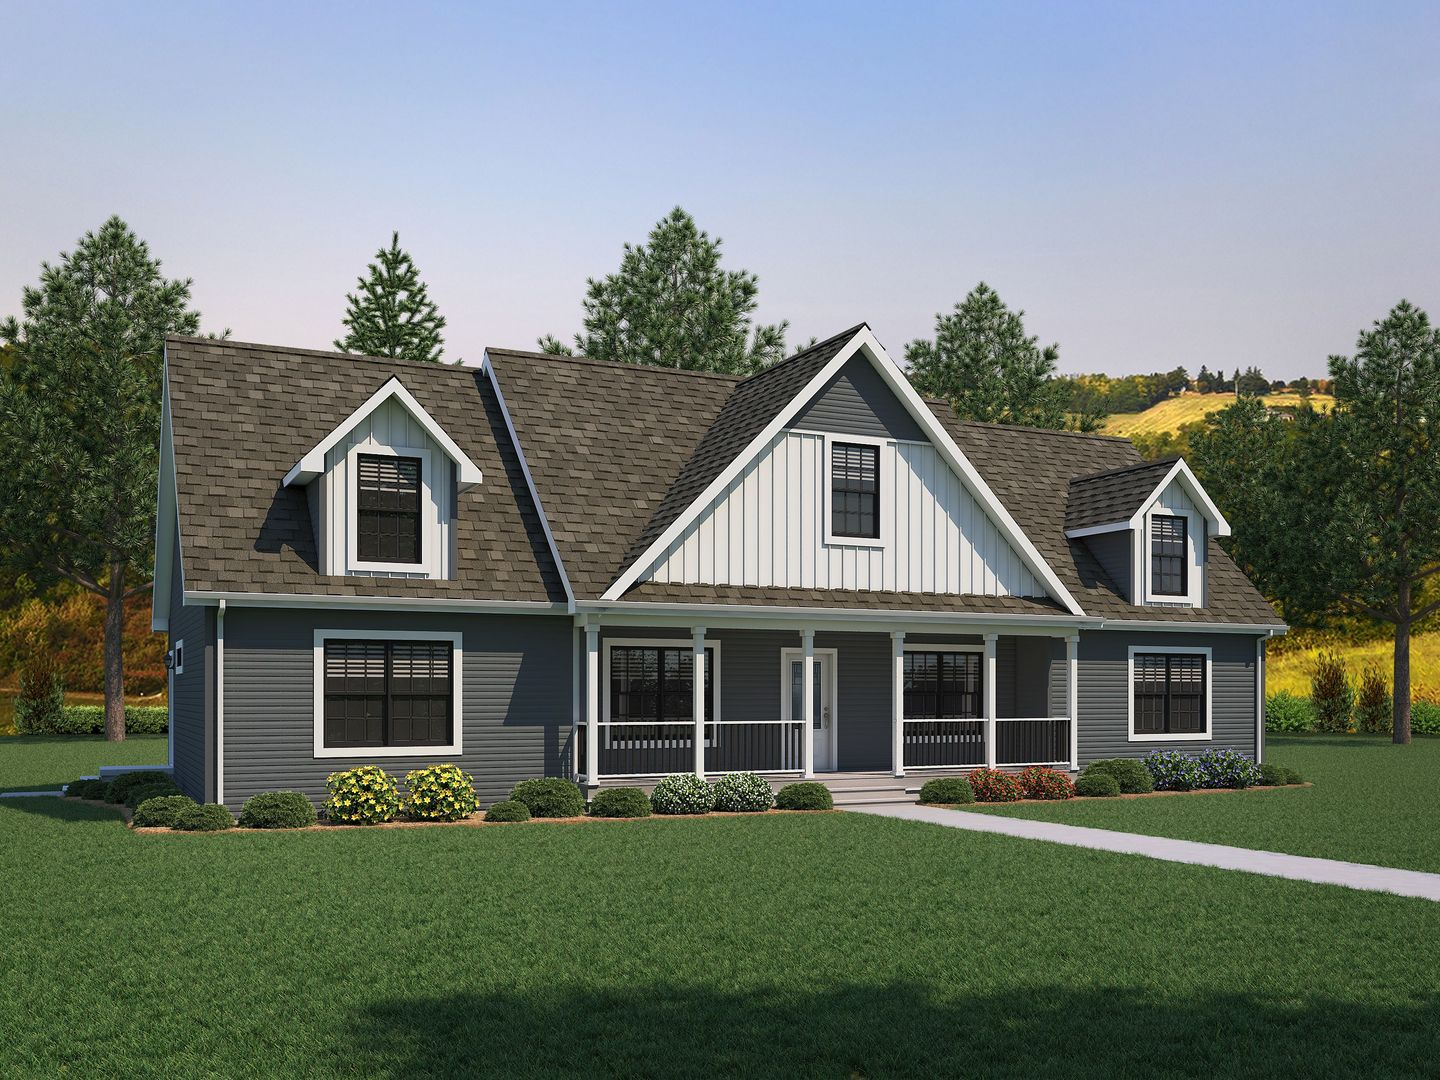 Home | Commodore Homes Radco Mobile Home Floor Plan on